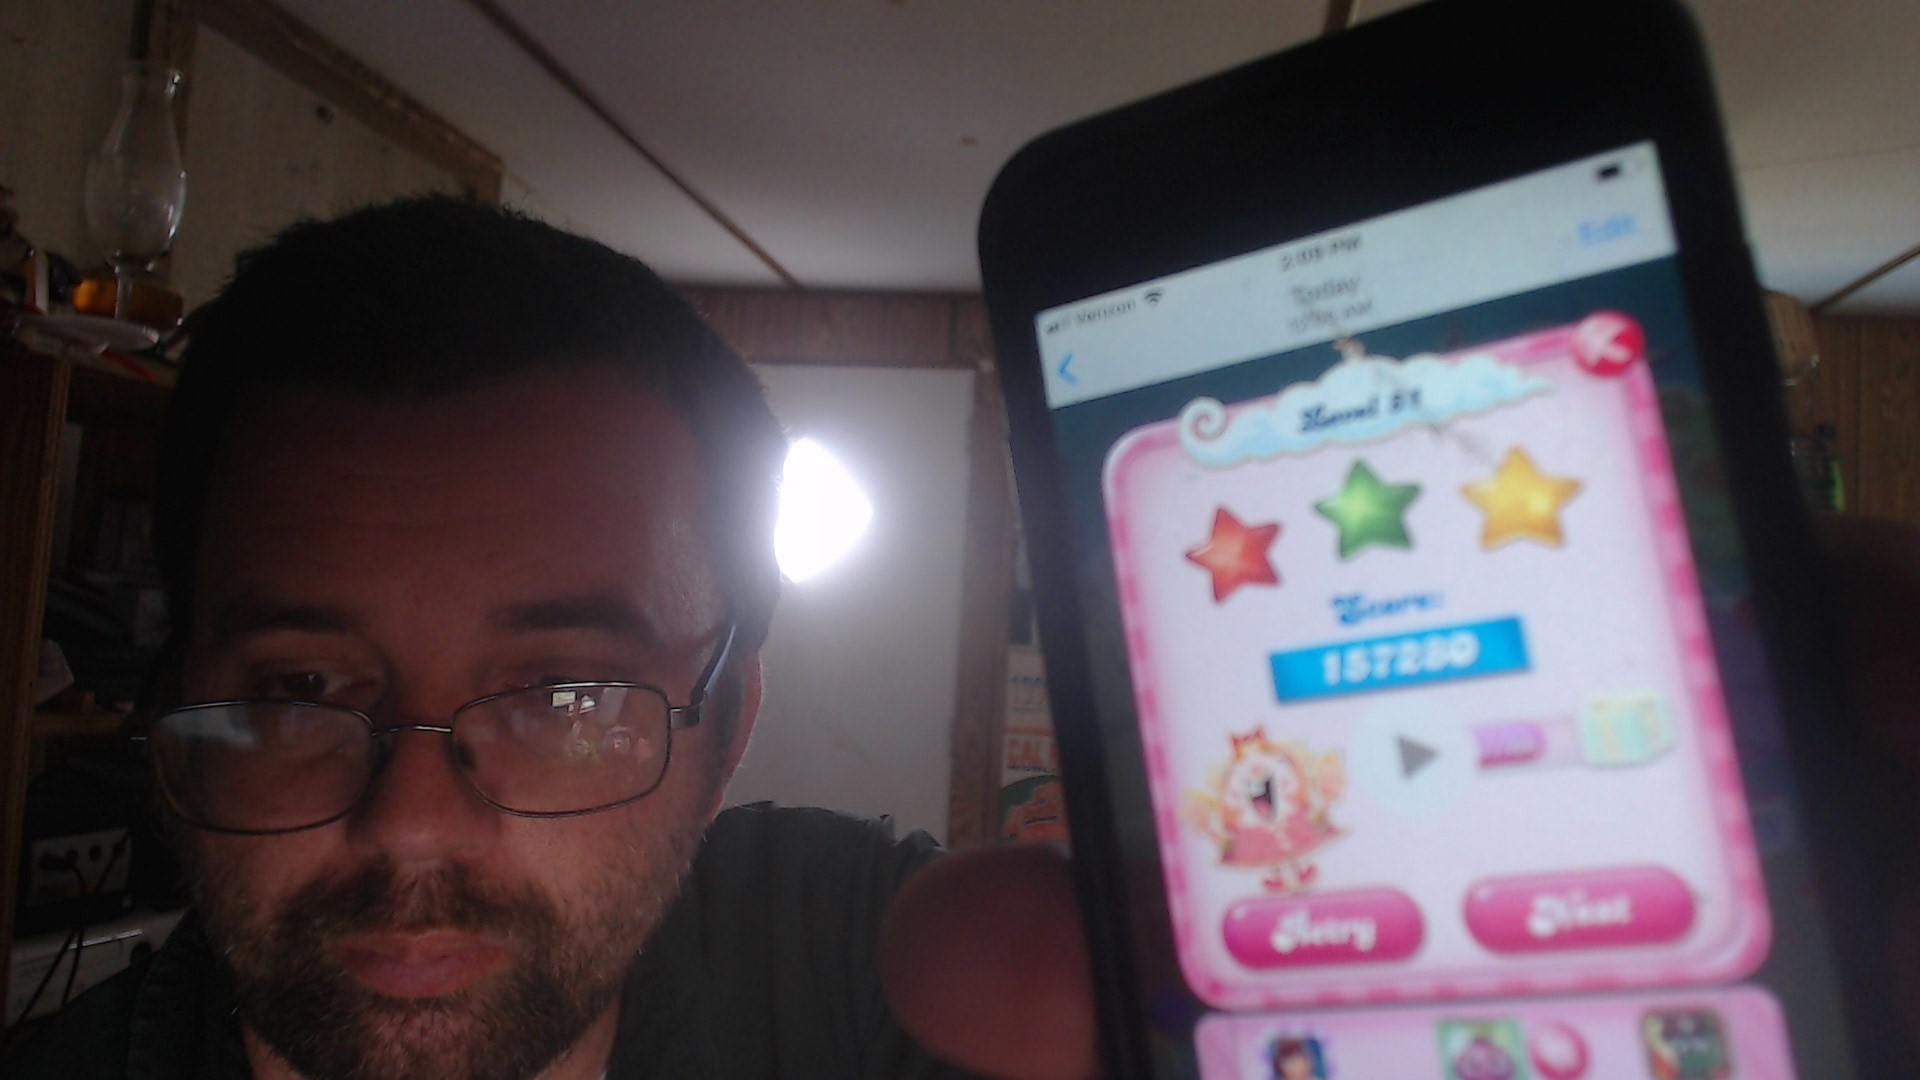 Candy Crush Saga: Level 051 157,280 points